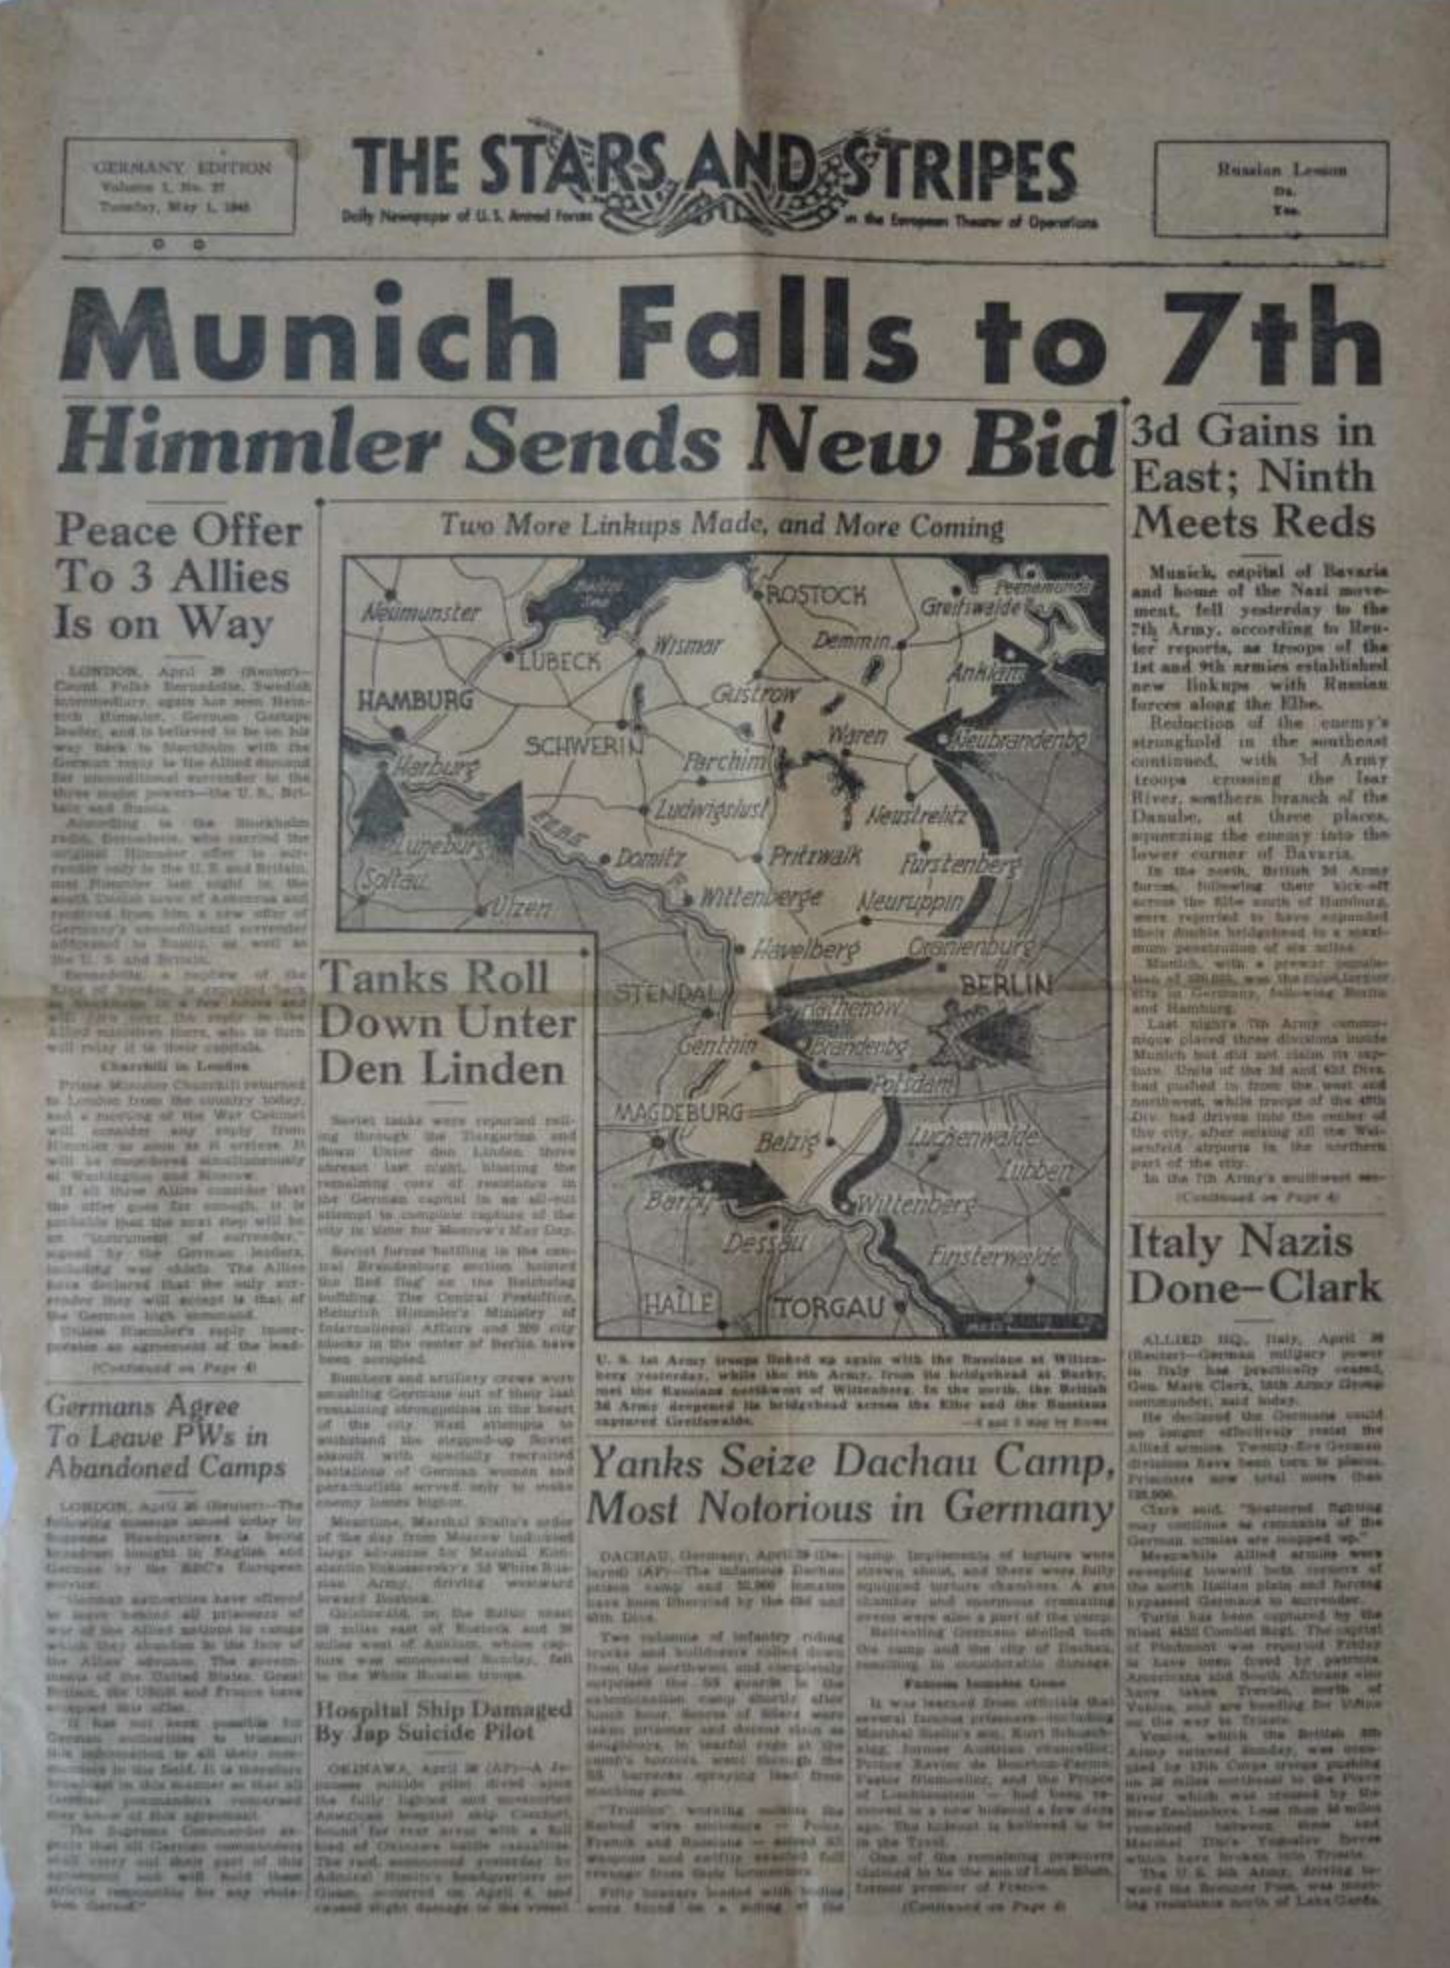 Munich Falls to 7th. Stars and Stripes 1945 05 01